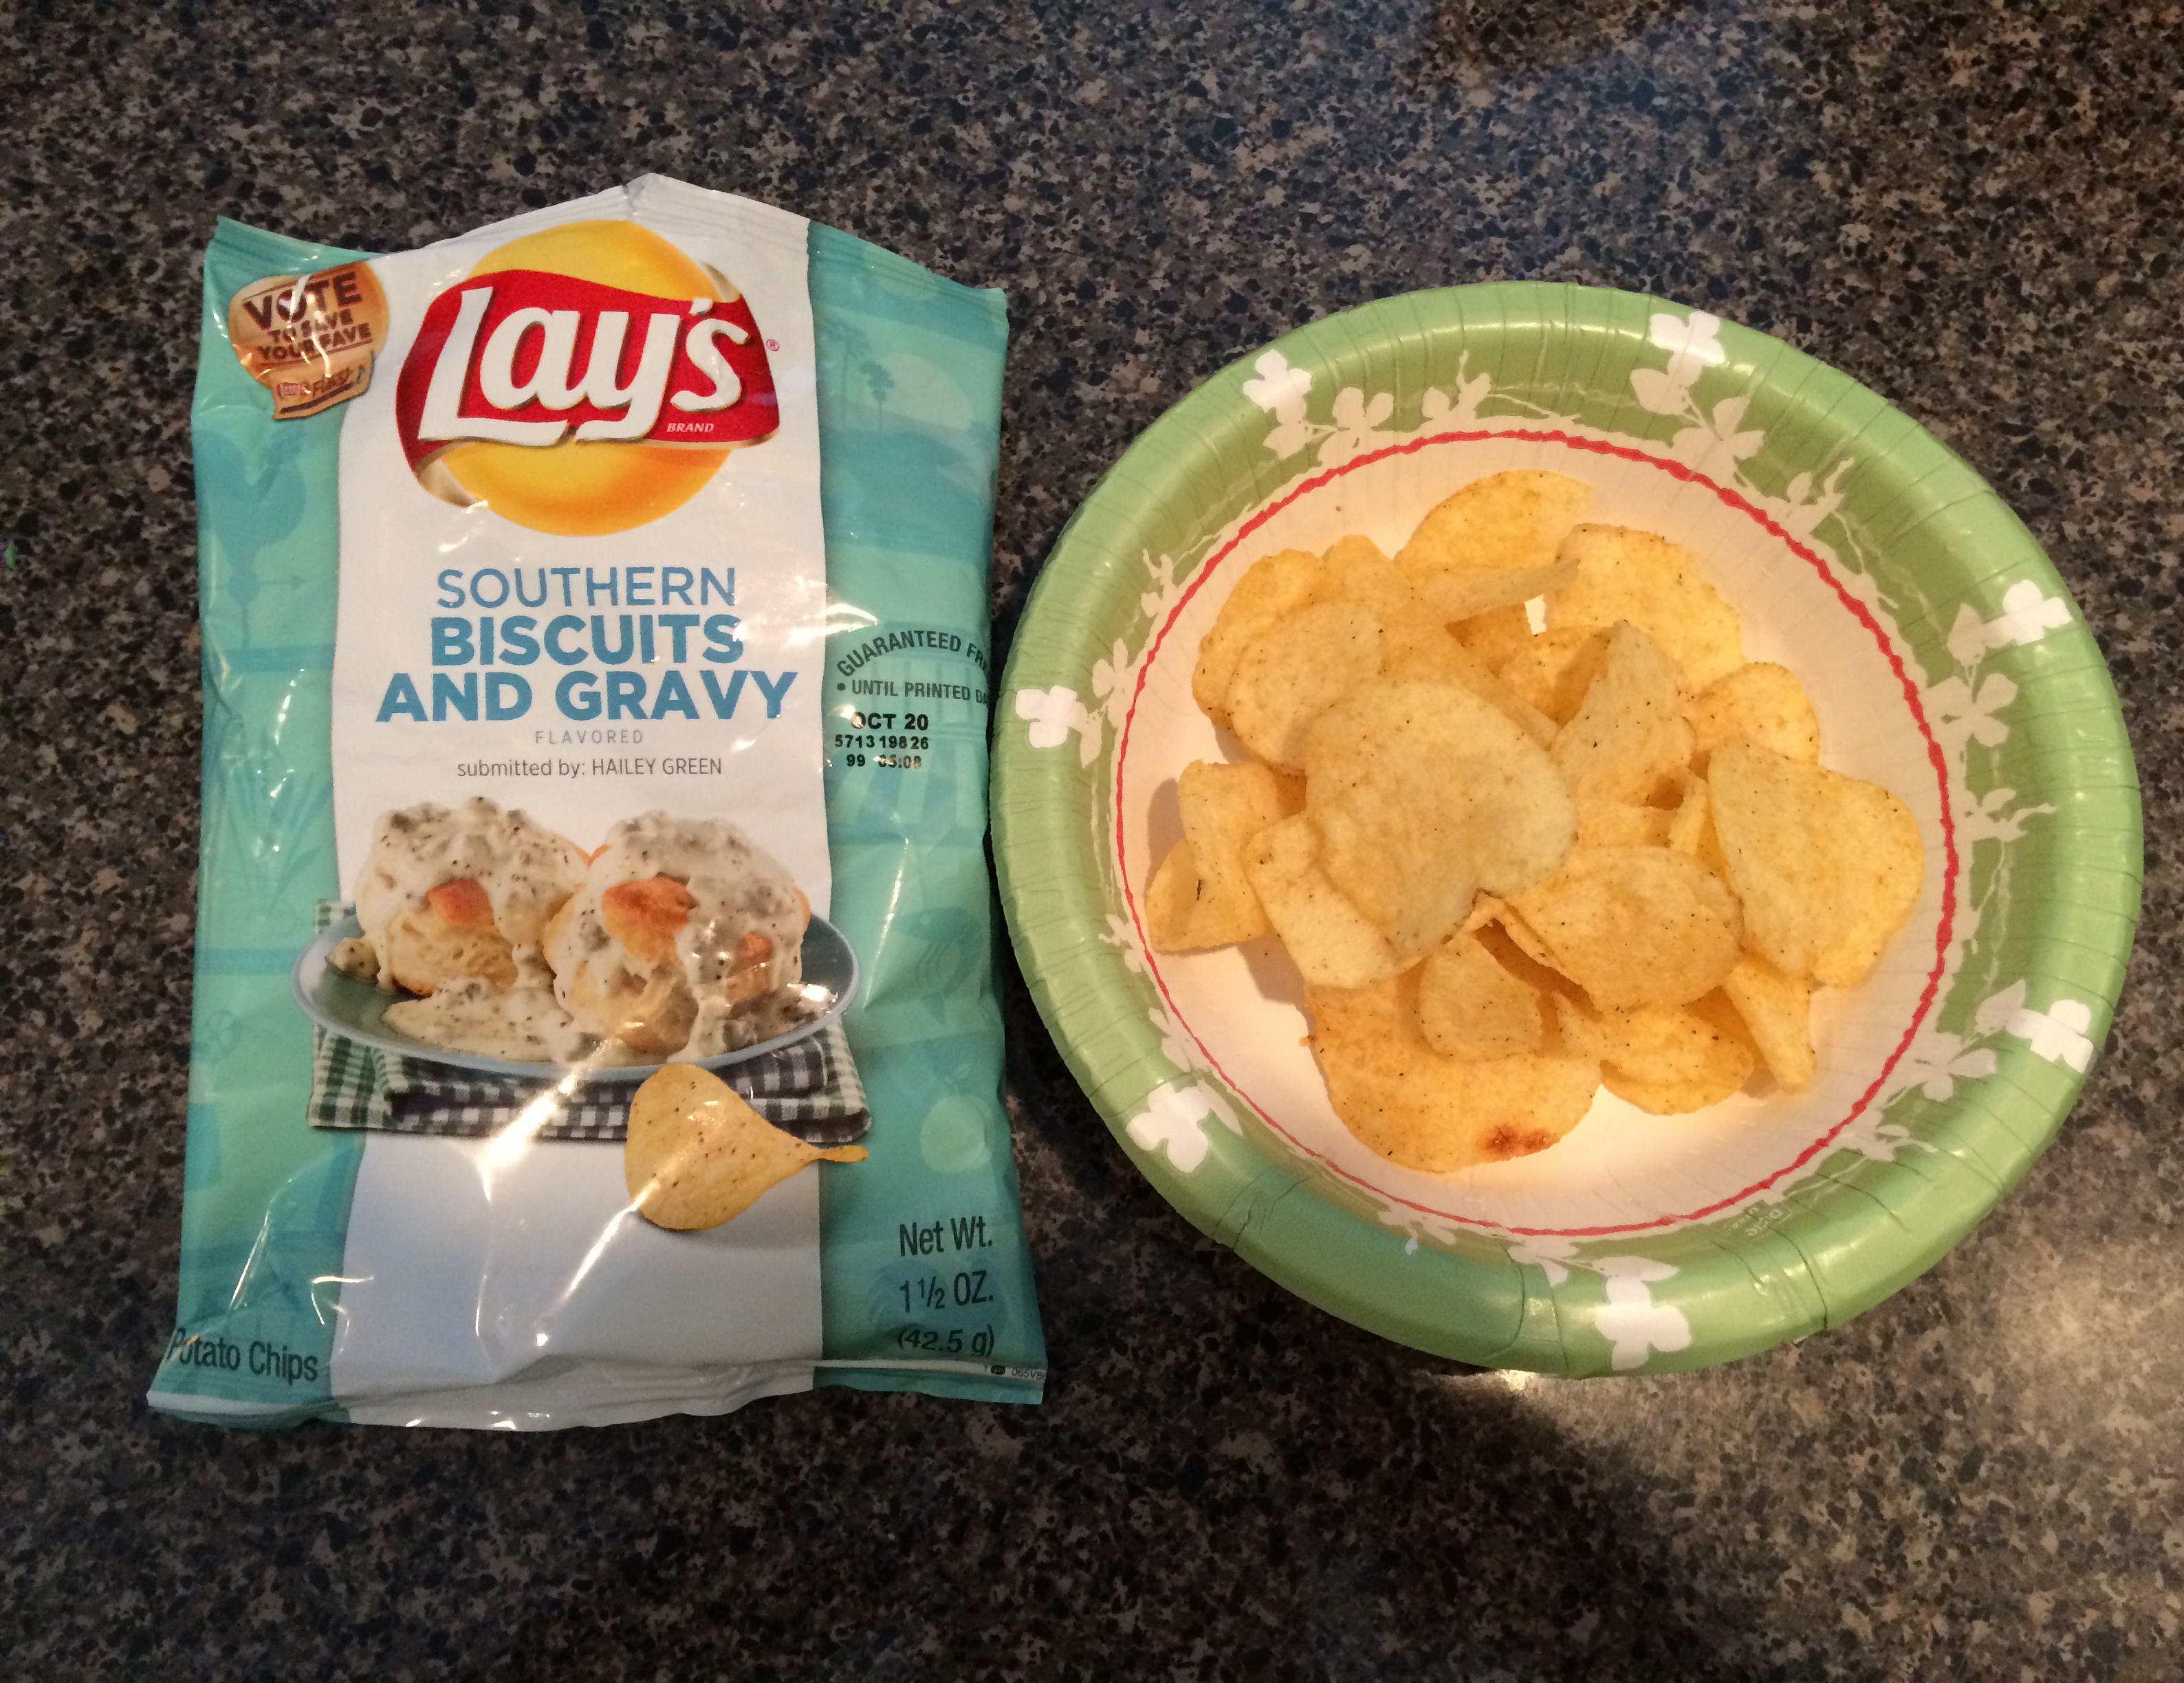 The #DoUsAFlavor Southern Biscuits and Gravy chips were my favorite! They taste exactly like biscuits and gravy.